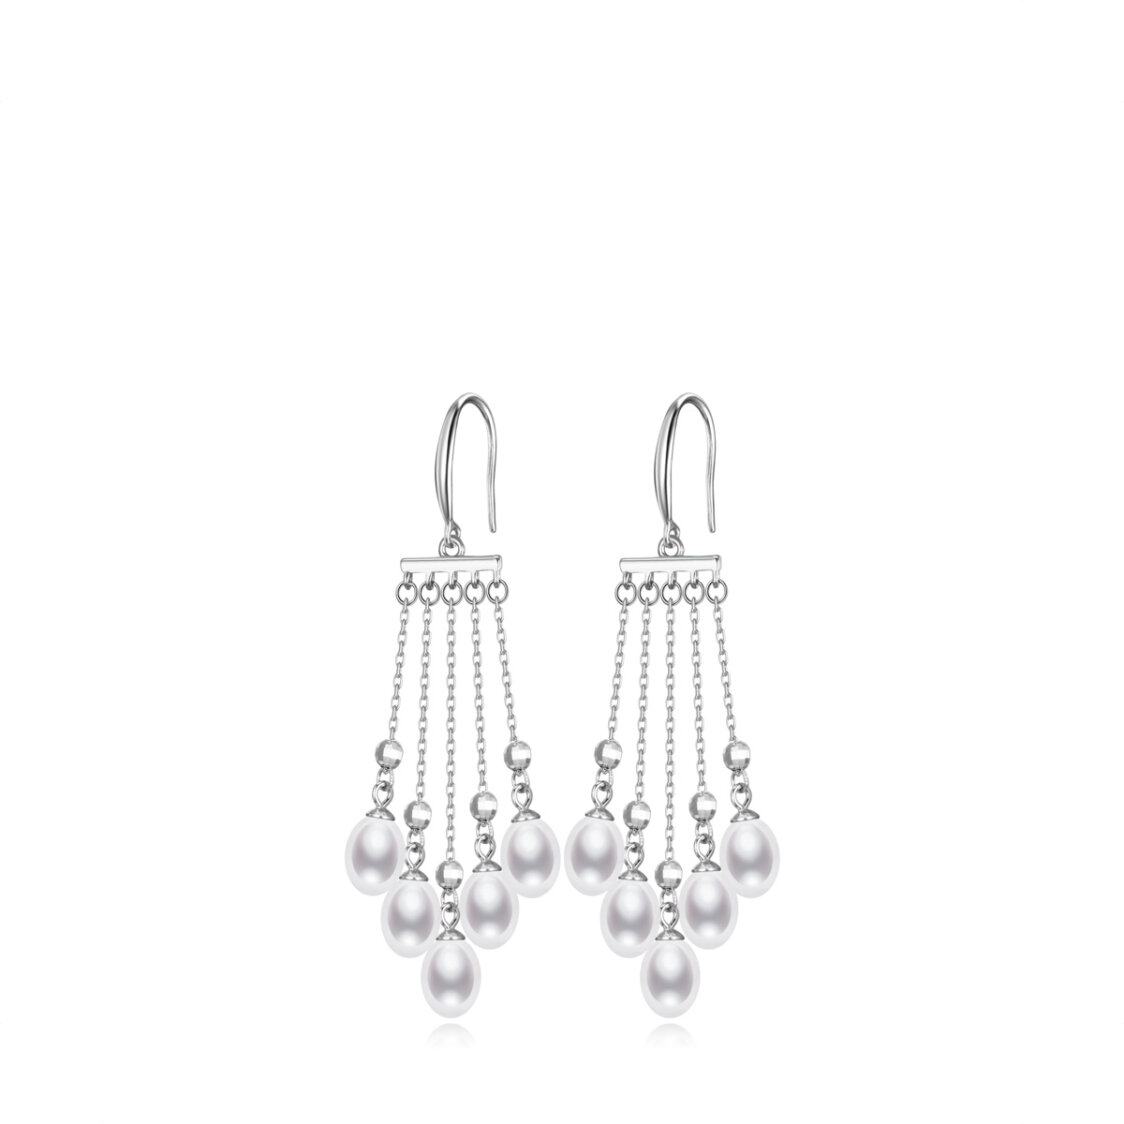 Cluster Pearl Earrings 925 Sterling Silver Plated with Rhodium